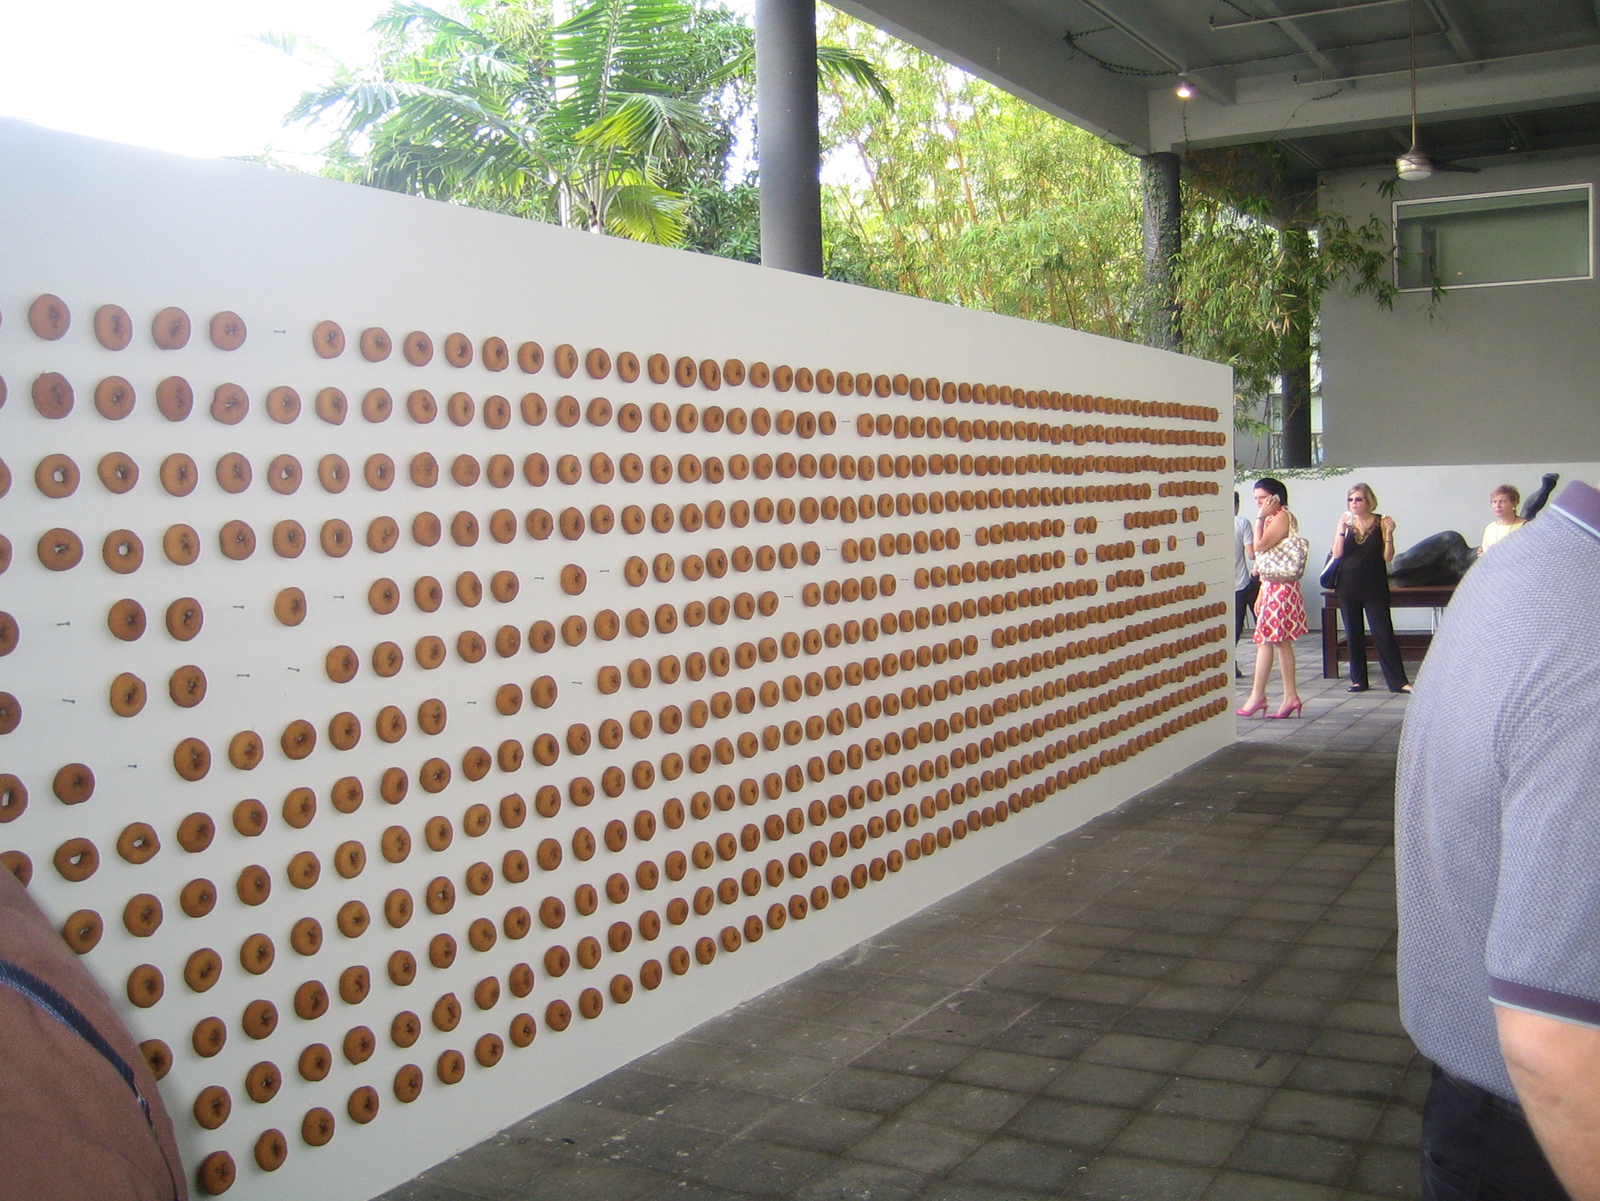 Donut Wall Rubell Family Collection